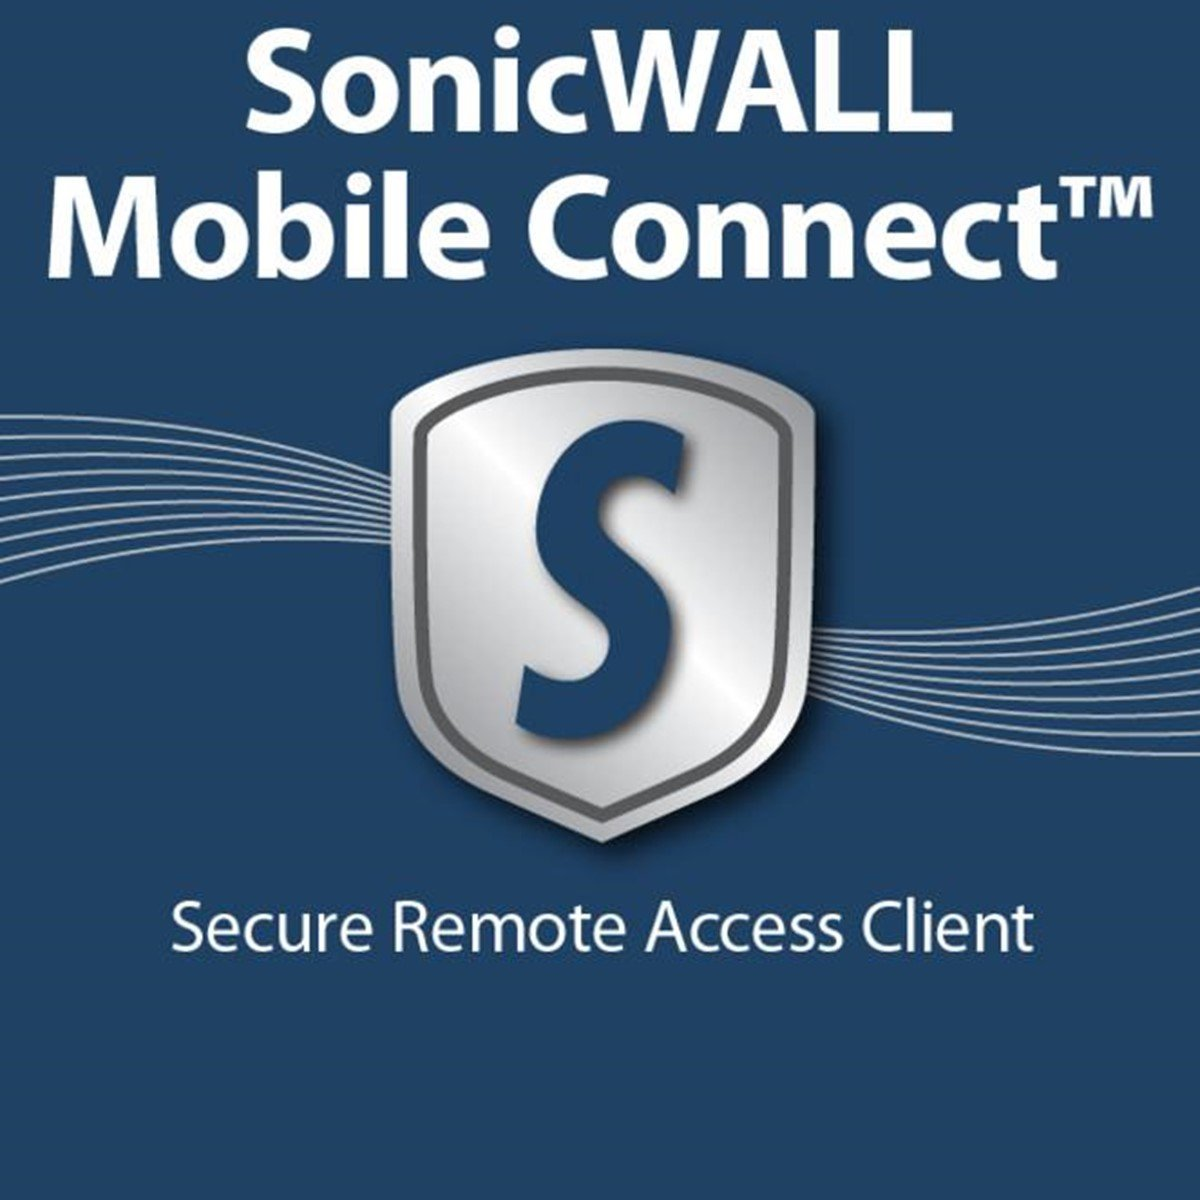 SonicWall Mobile Connect Alternatives and Similar Apps